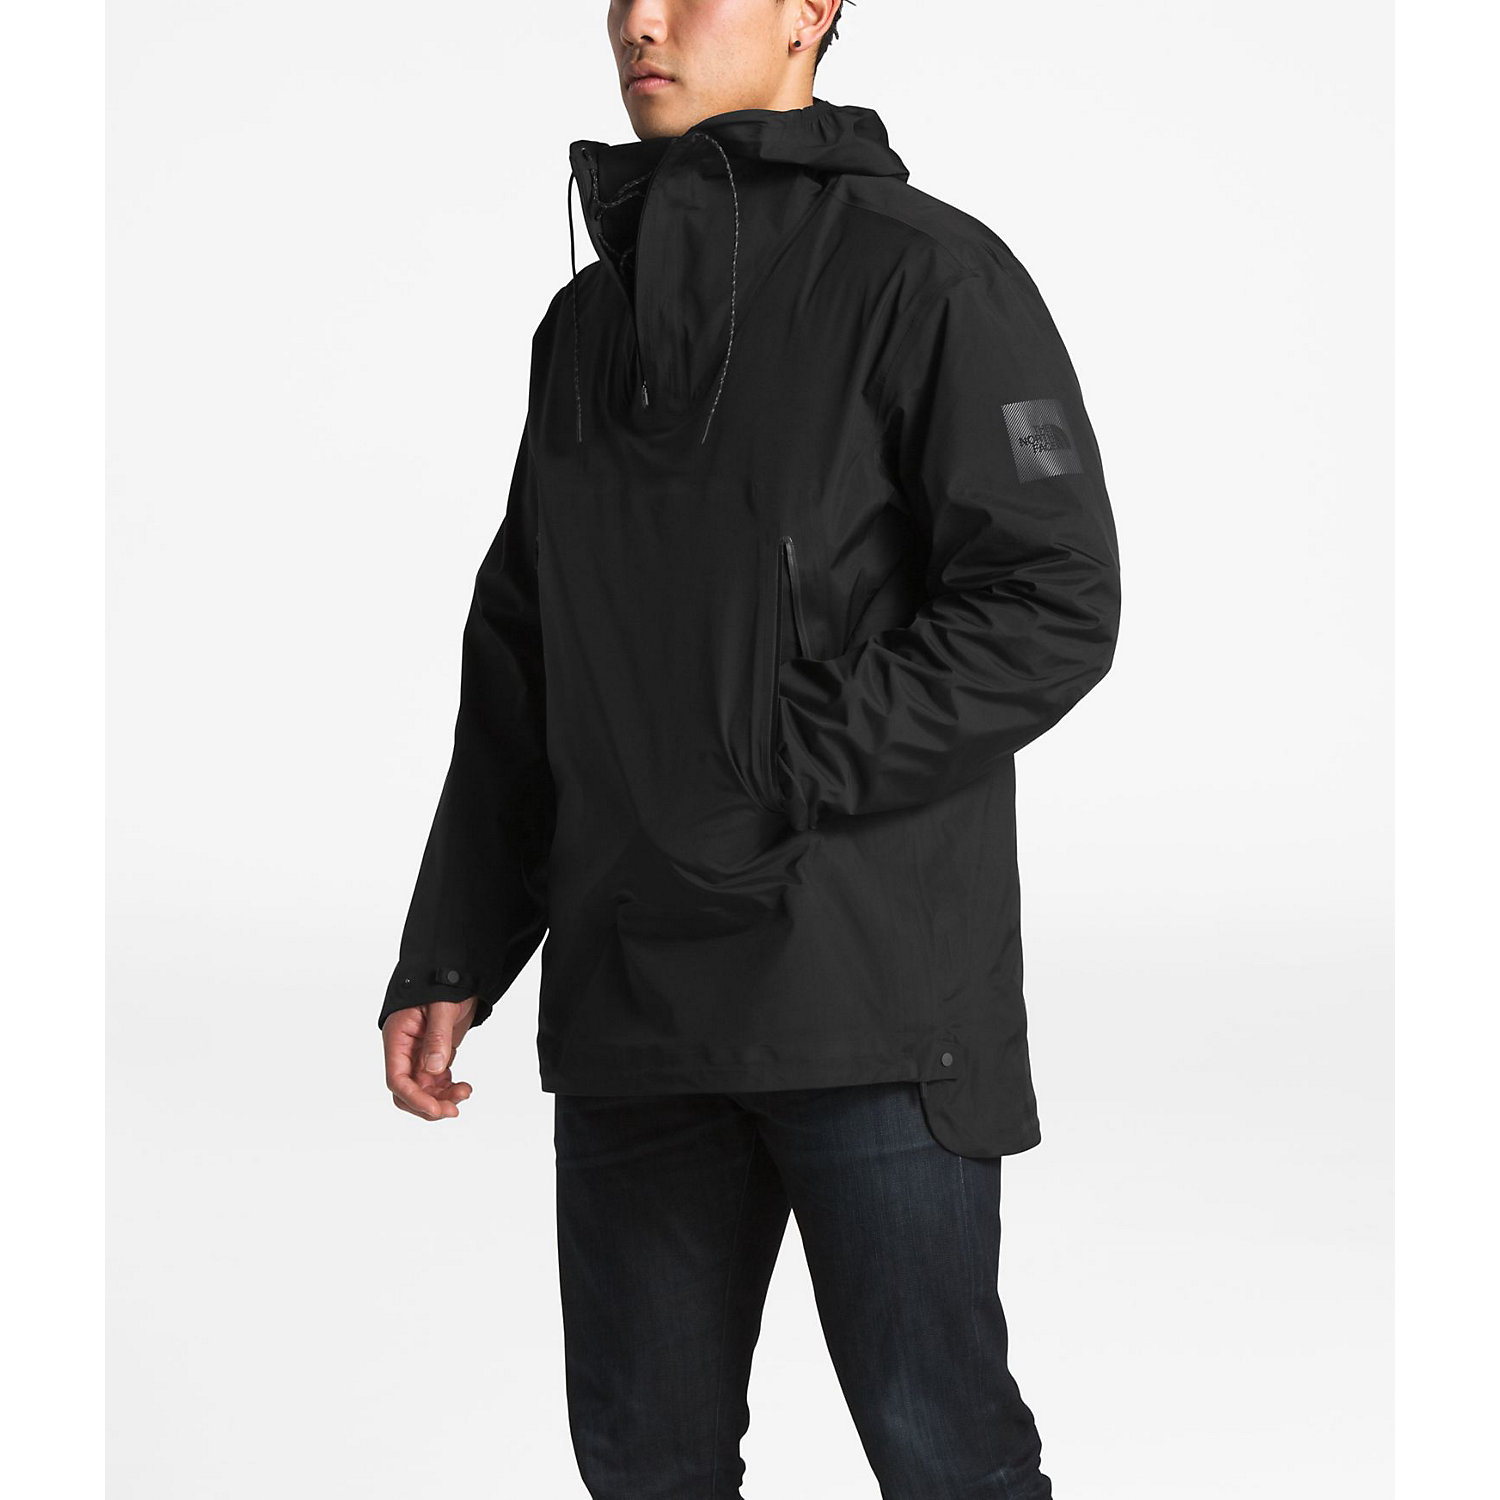 cee36e2b1 The North Face Men's Cryos 3L New Winter Cagoule